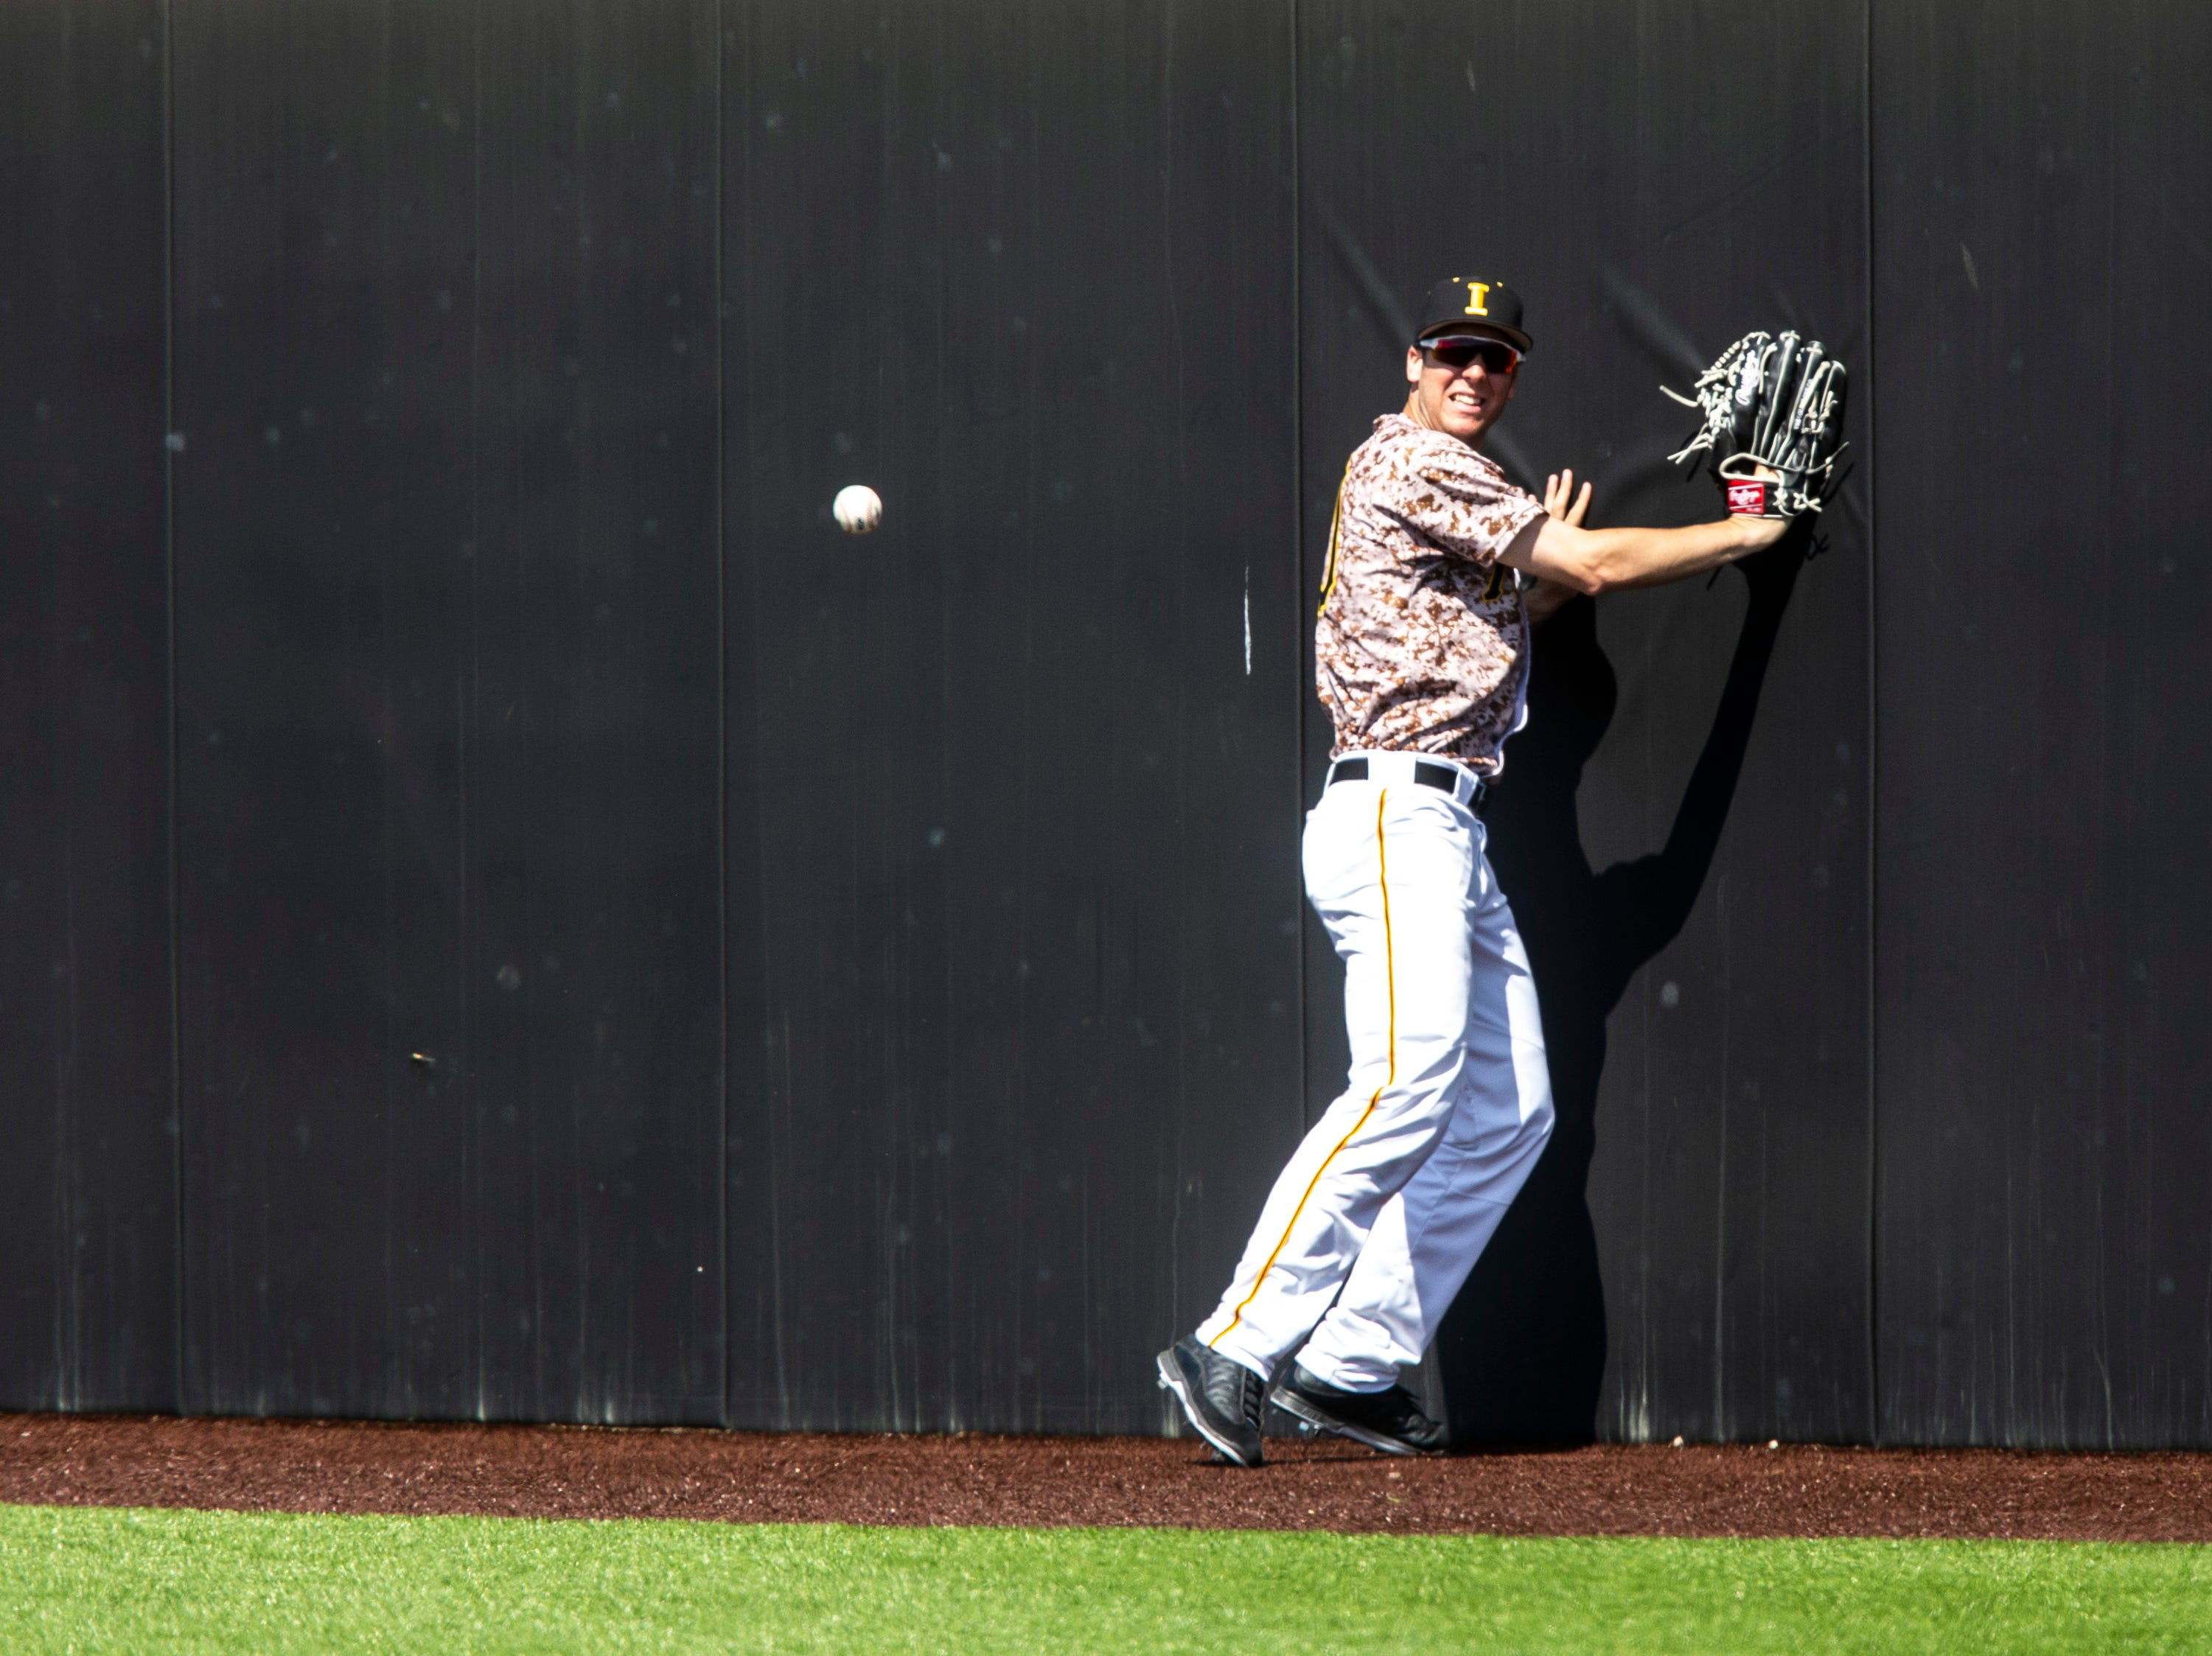 Iowa's Connor McCaffery (30) watches as a ball bounces past him at the right field wall during a NCAA non conference baseball game, Sunday, May 5, 2019, at Duane Banks Field in Iowa City, Iowa.